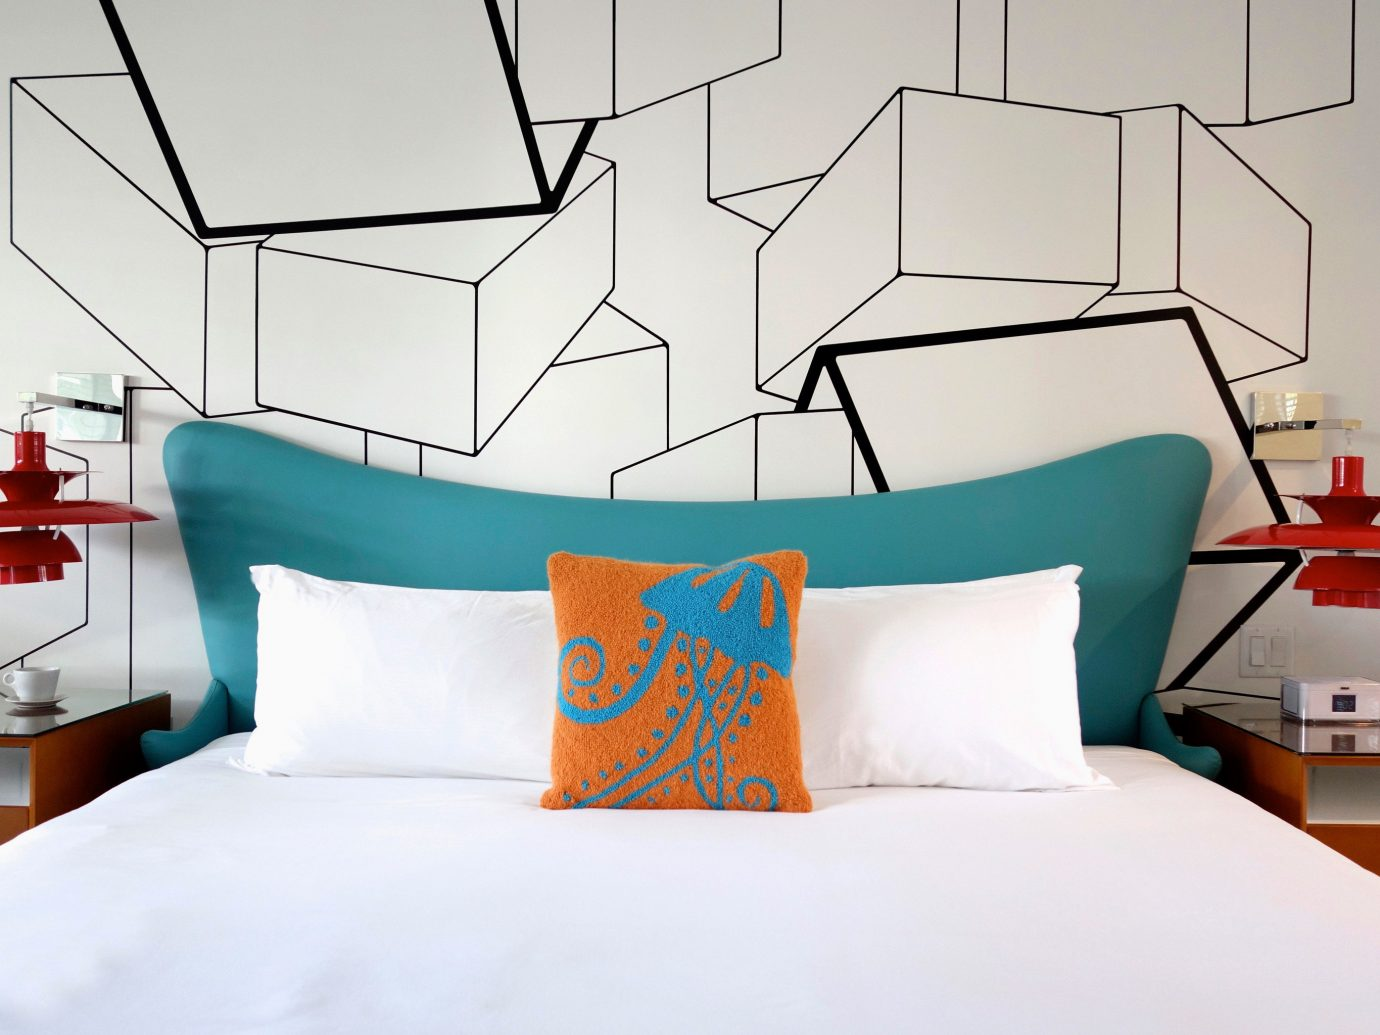 Trip Ideas indoor bed wall room bed sheet duvet cover furniture orange Design interior design pillow textile hotel Bedroom lamp